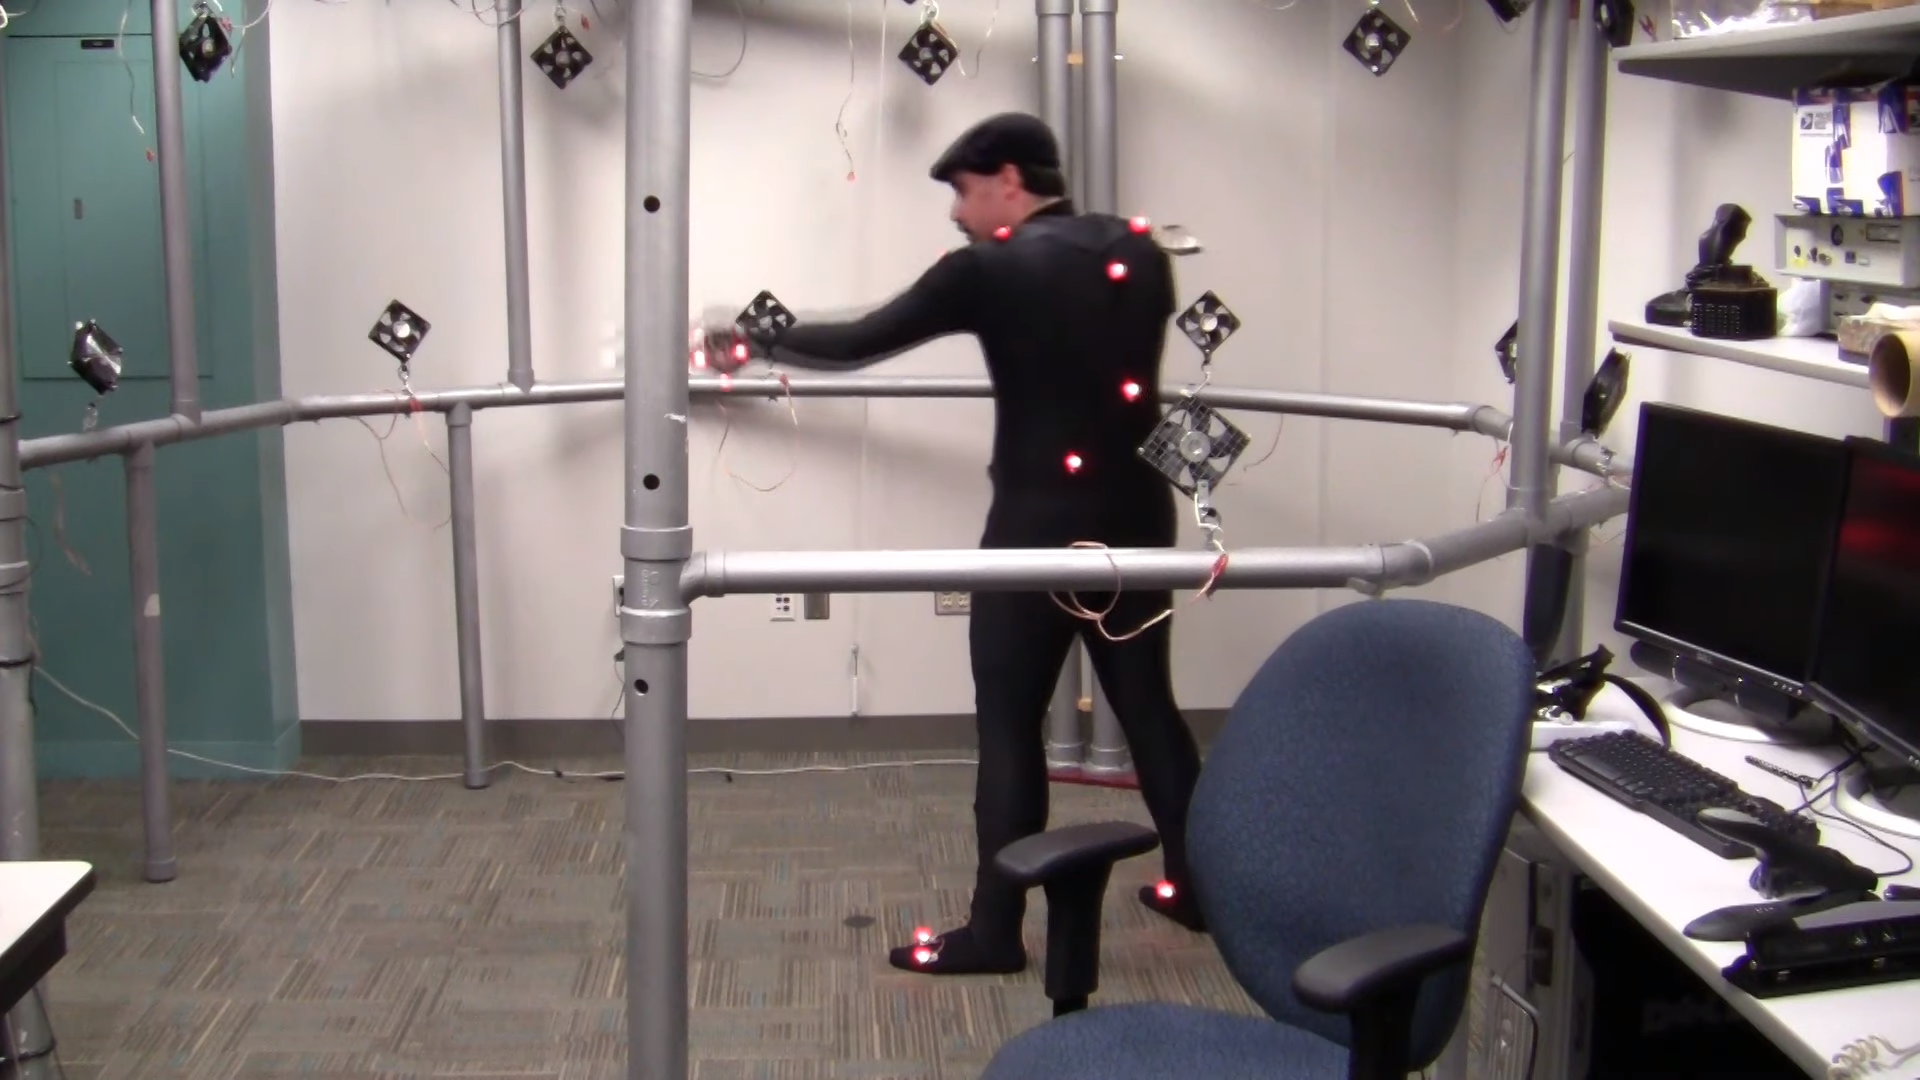 Motion capture technologies in the IMGD Interaction Lab